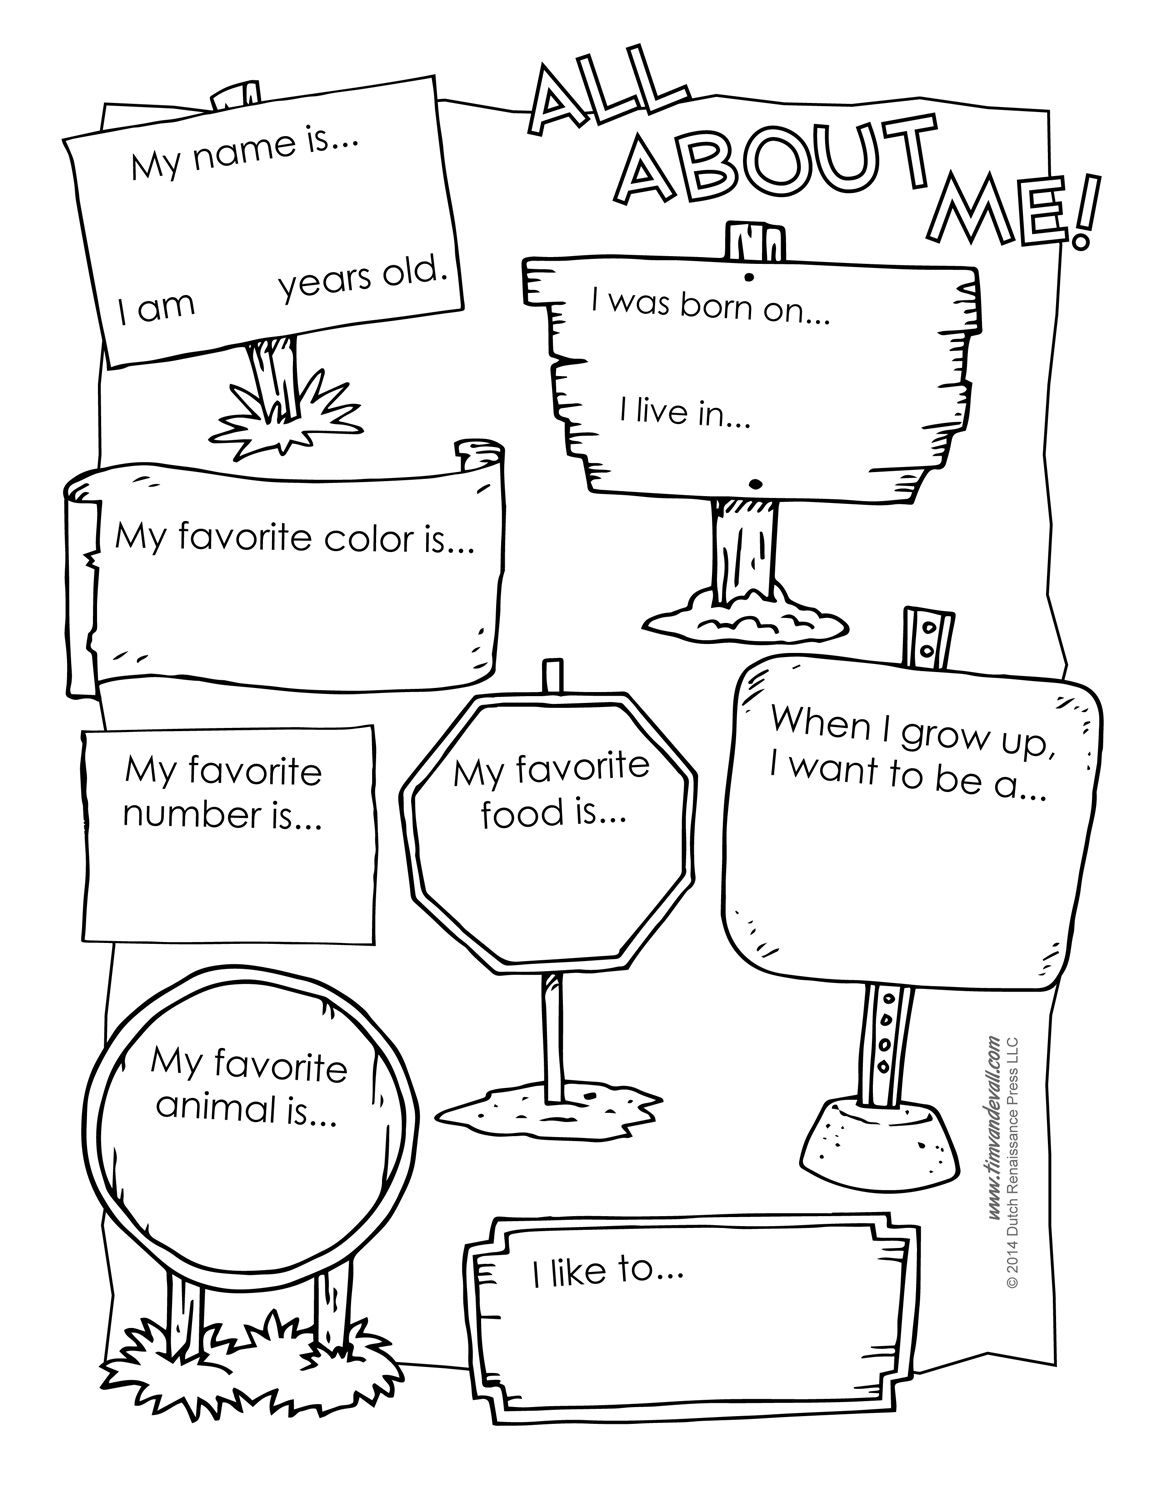 All about me preschool template 6 best images of all for About me template for students